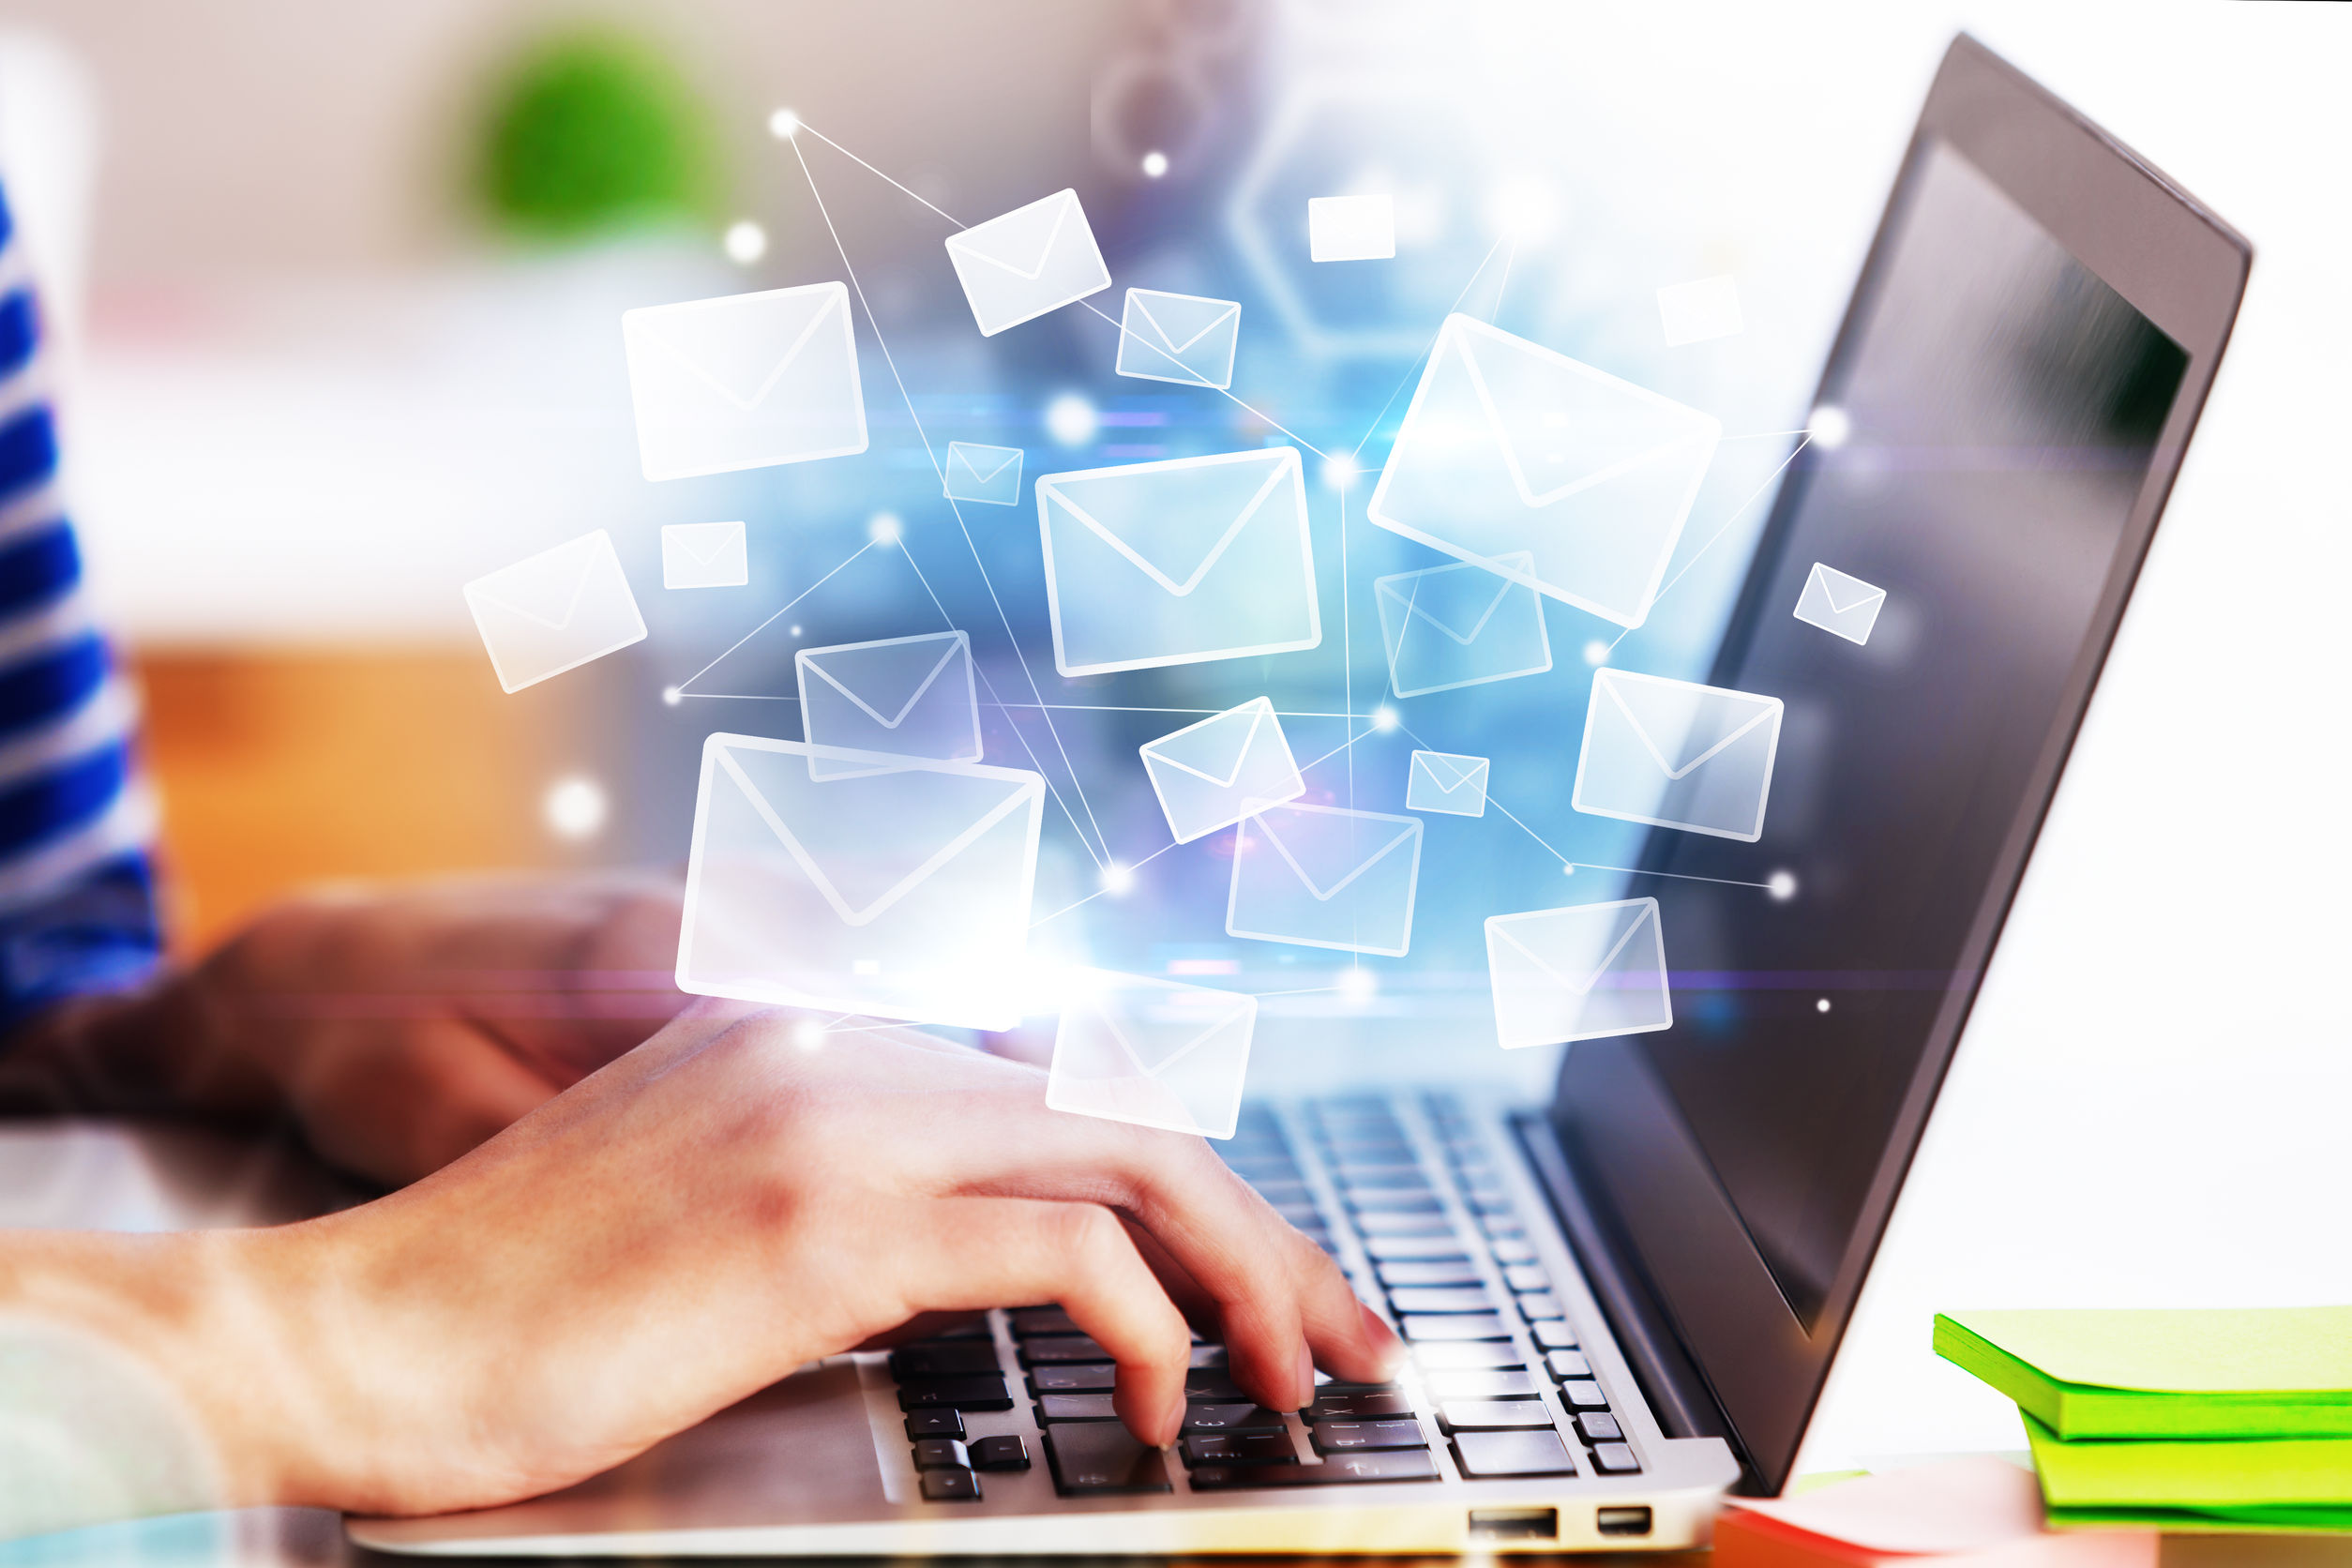 PoliteMail Survey says Email Rules the Roost